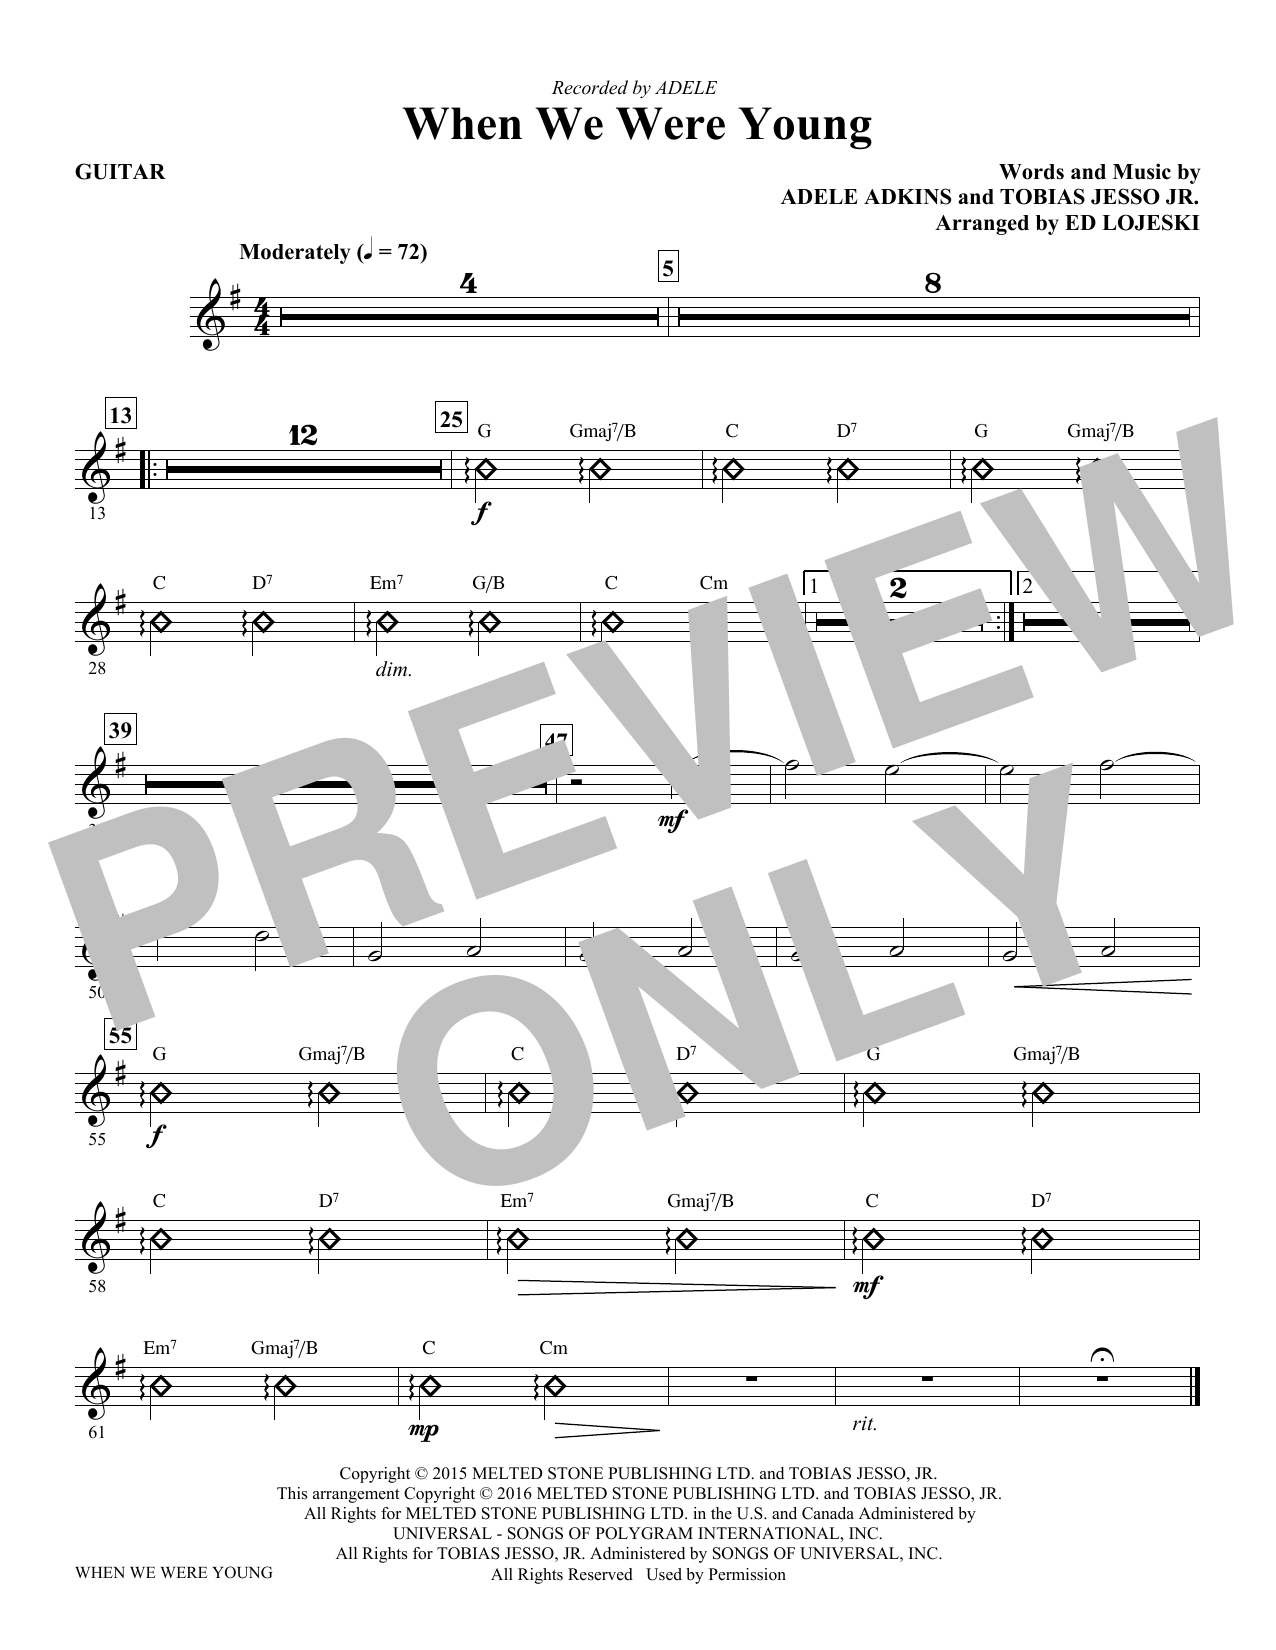 When We Were Young - Guitar Sheet Music